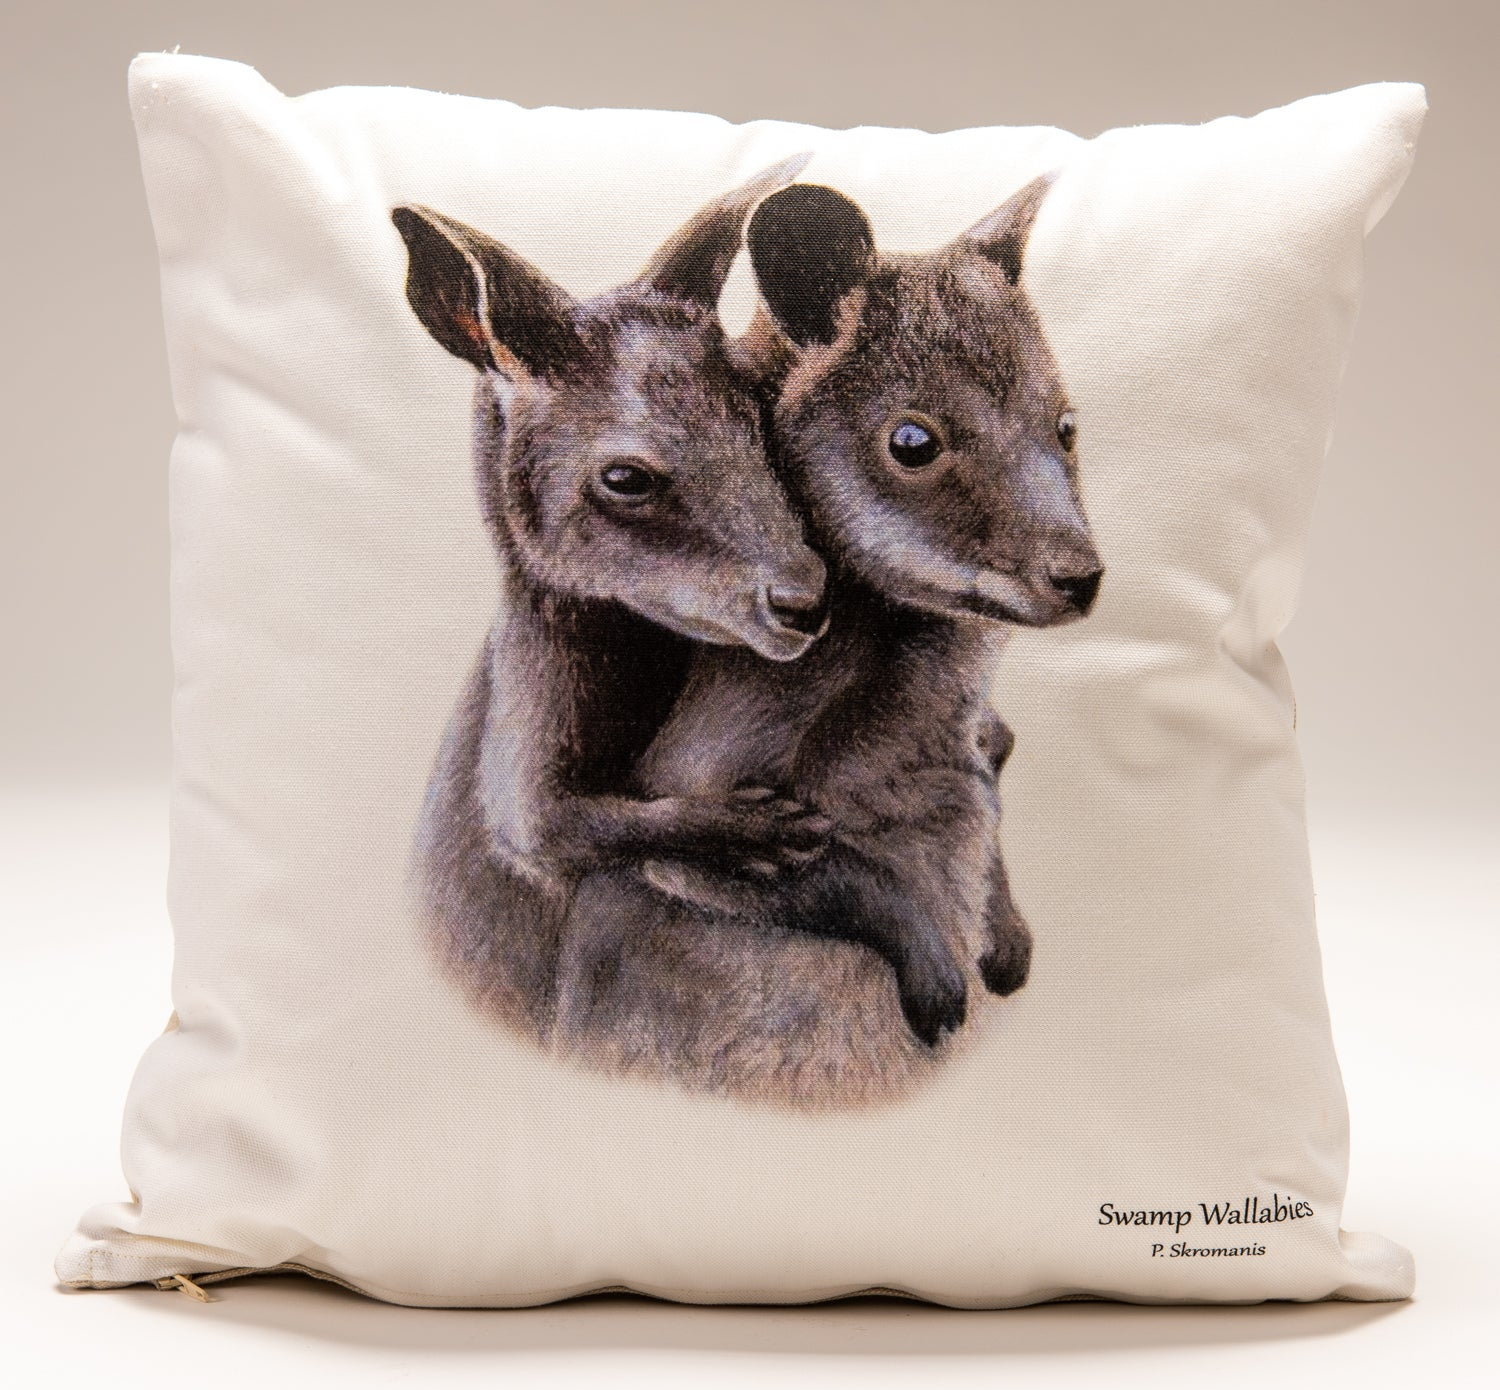 Cushion Covers - Swamp Wallabies